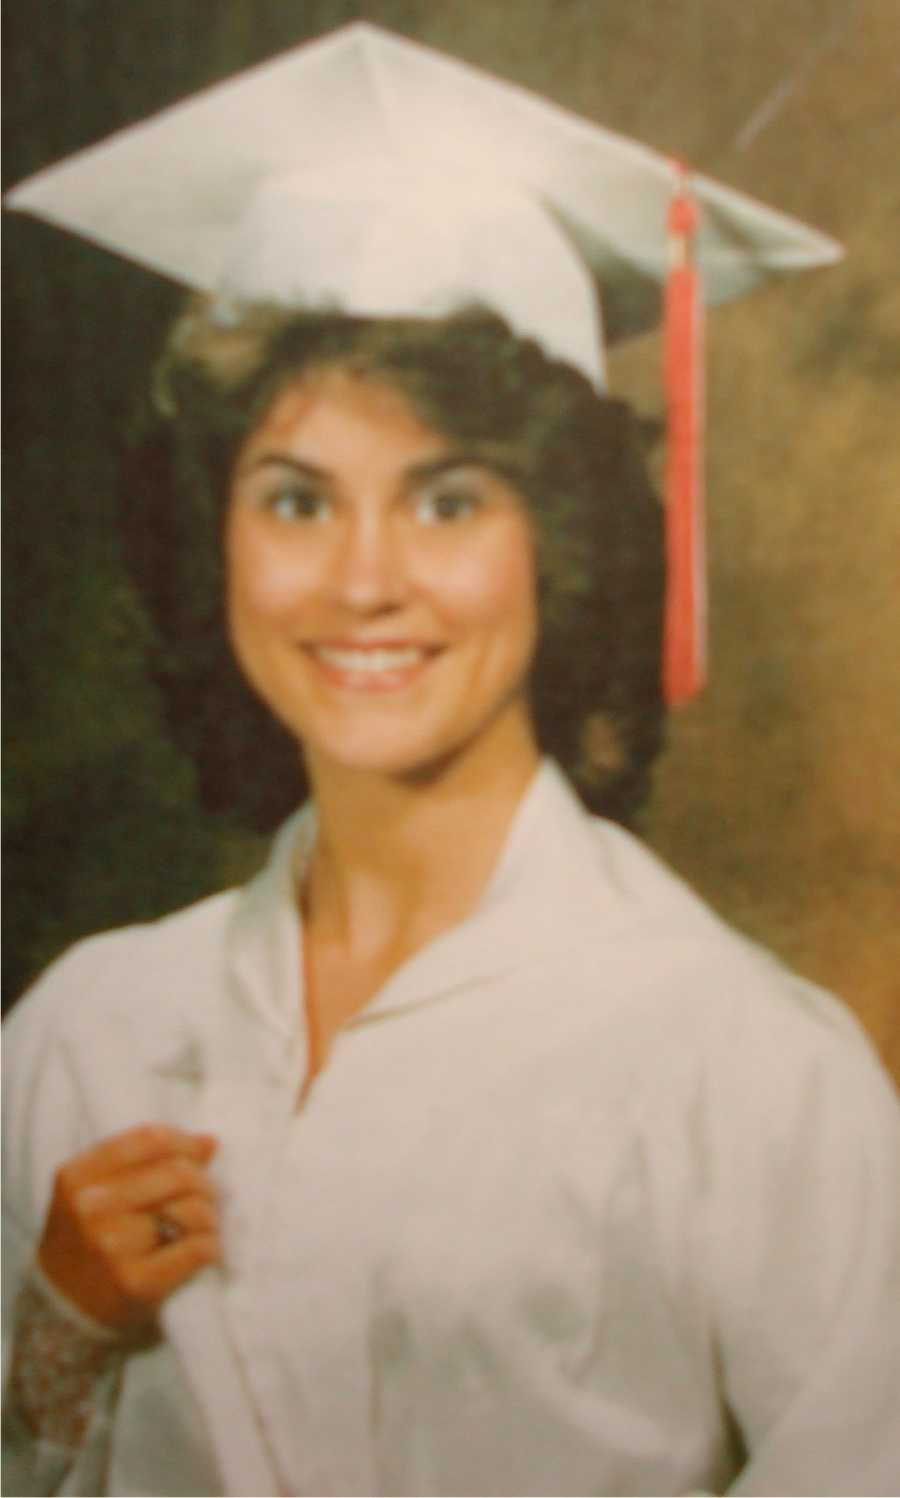 Here's another high school photo.